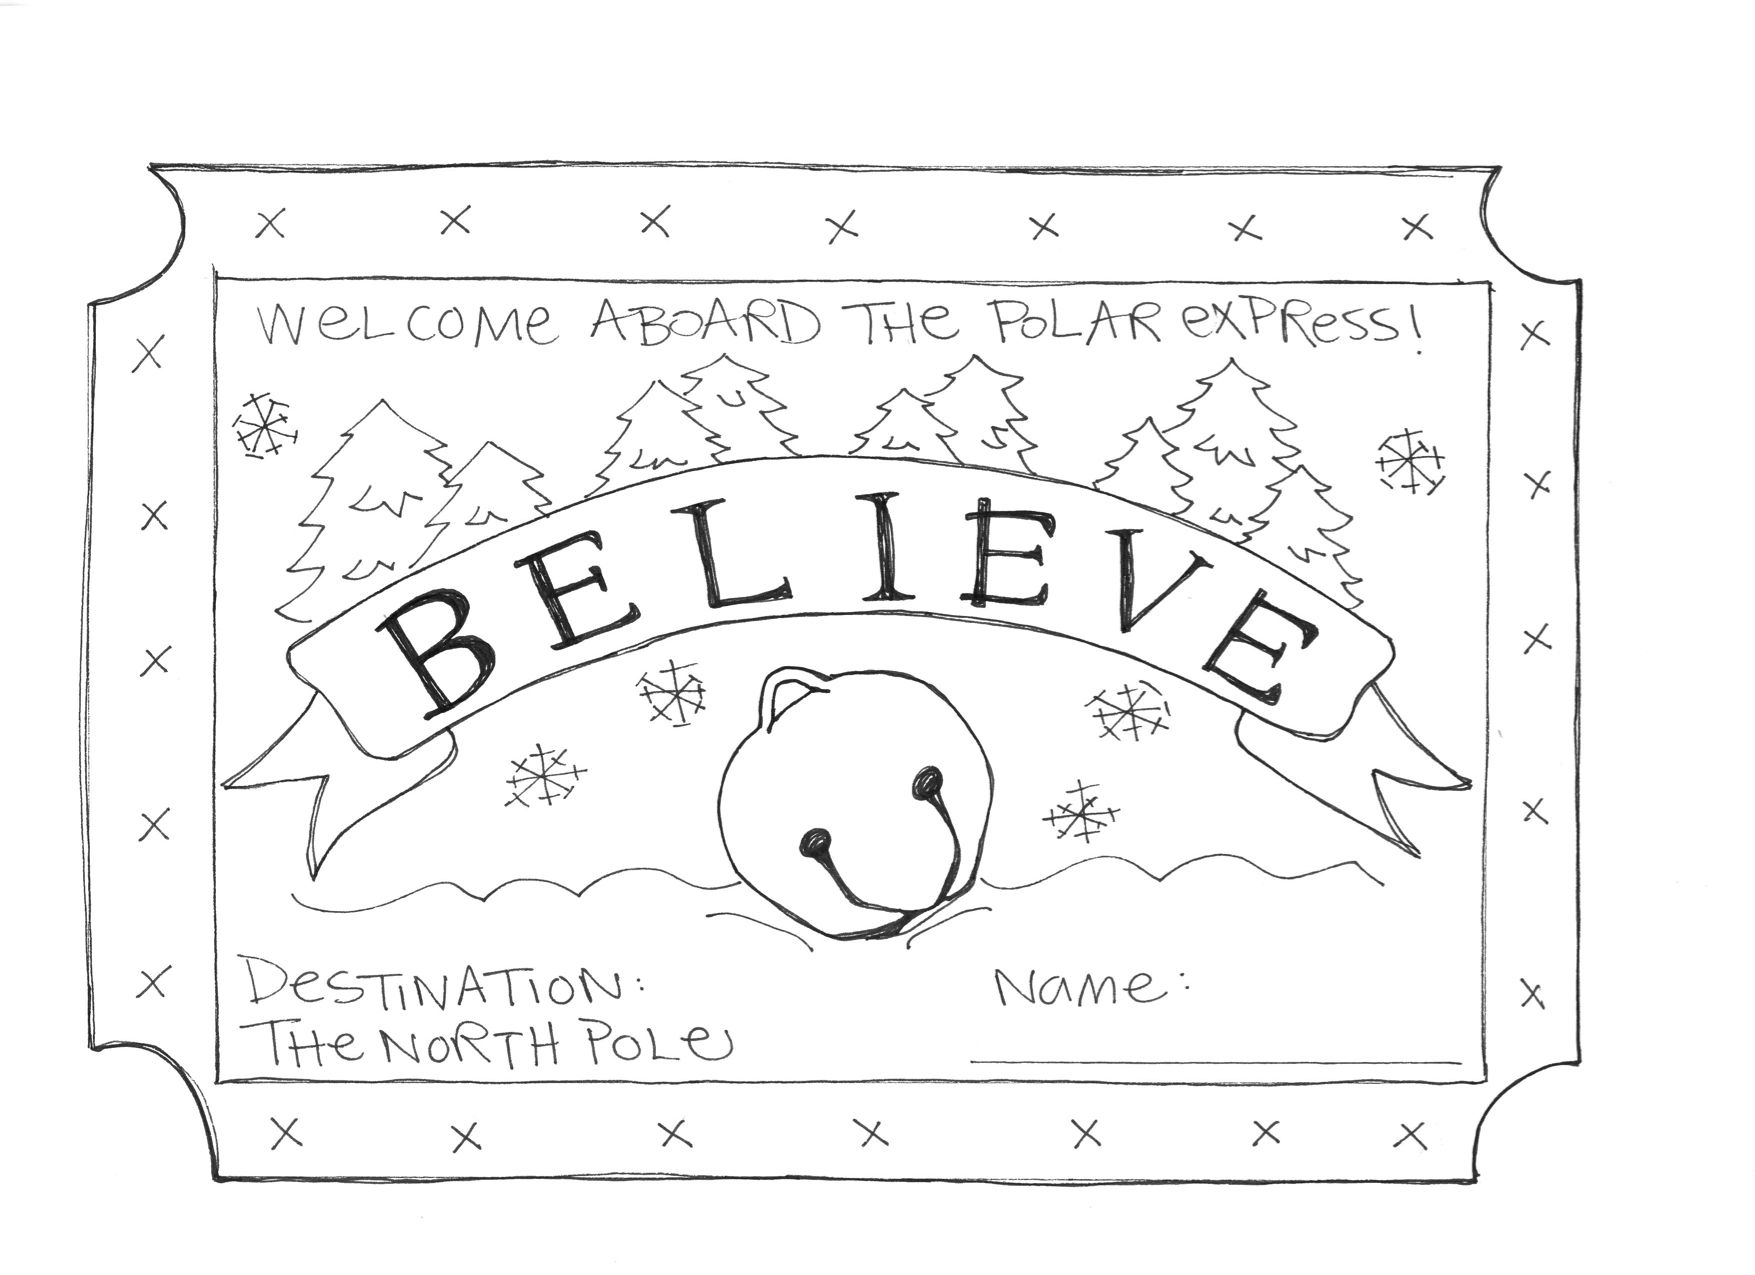 Made This Coloring Sheet For A Polar Express Themed Children